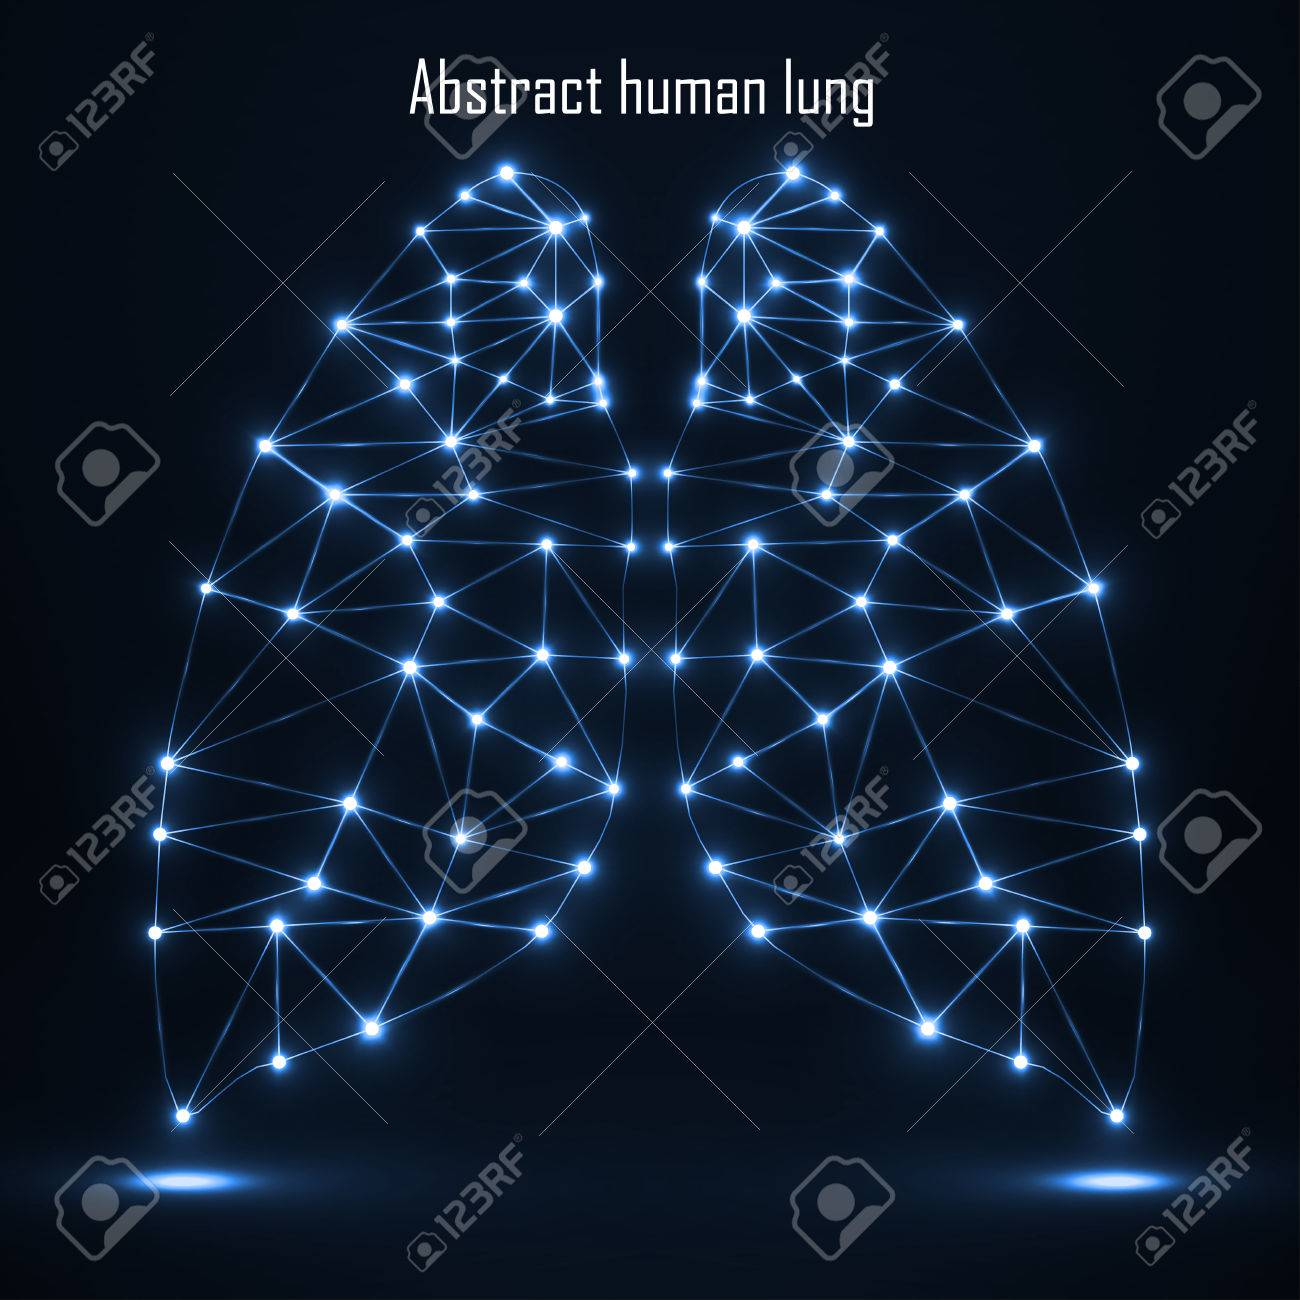 Abstract Human Lung Network Connections Vector Illustration